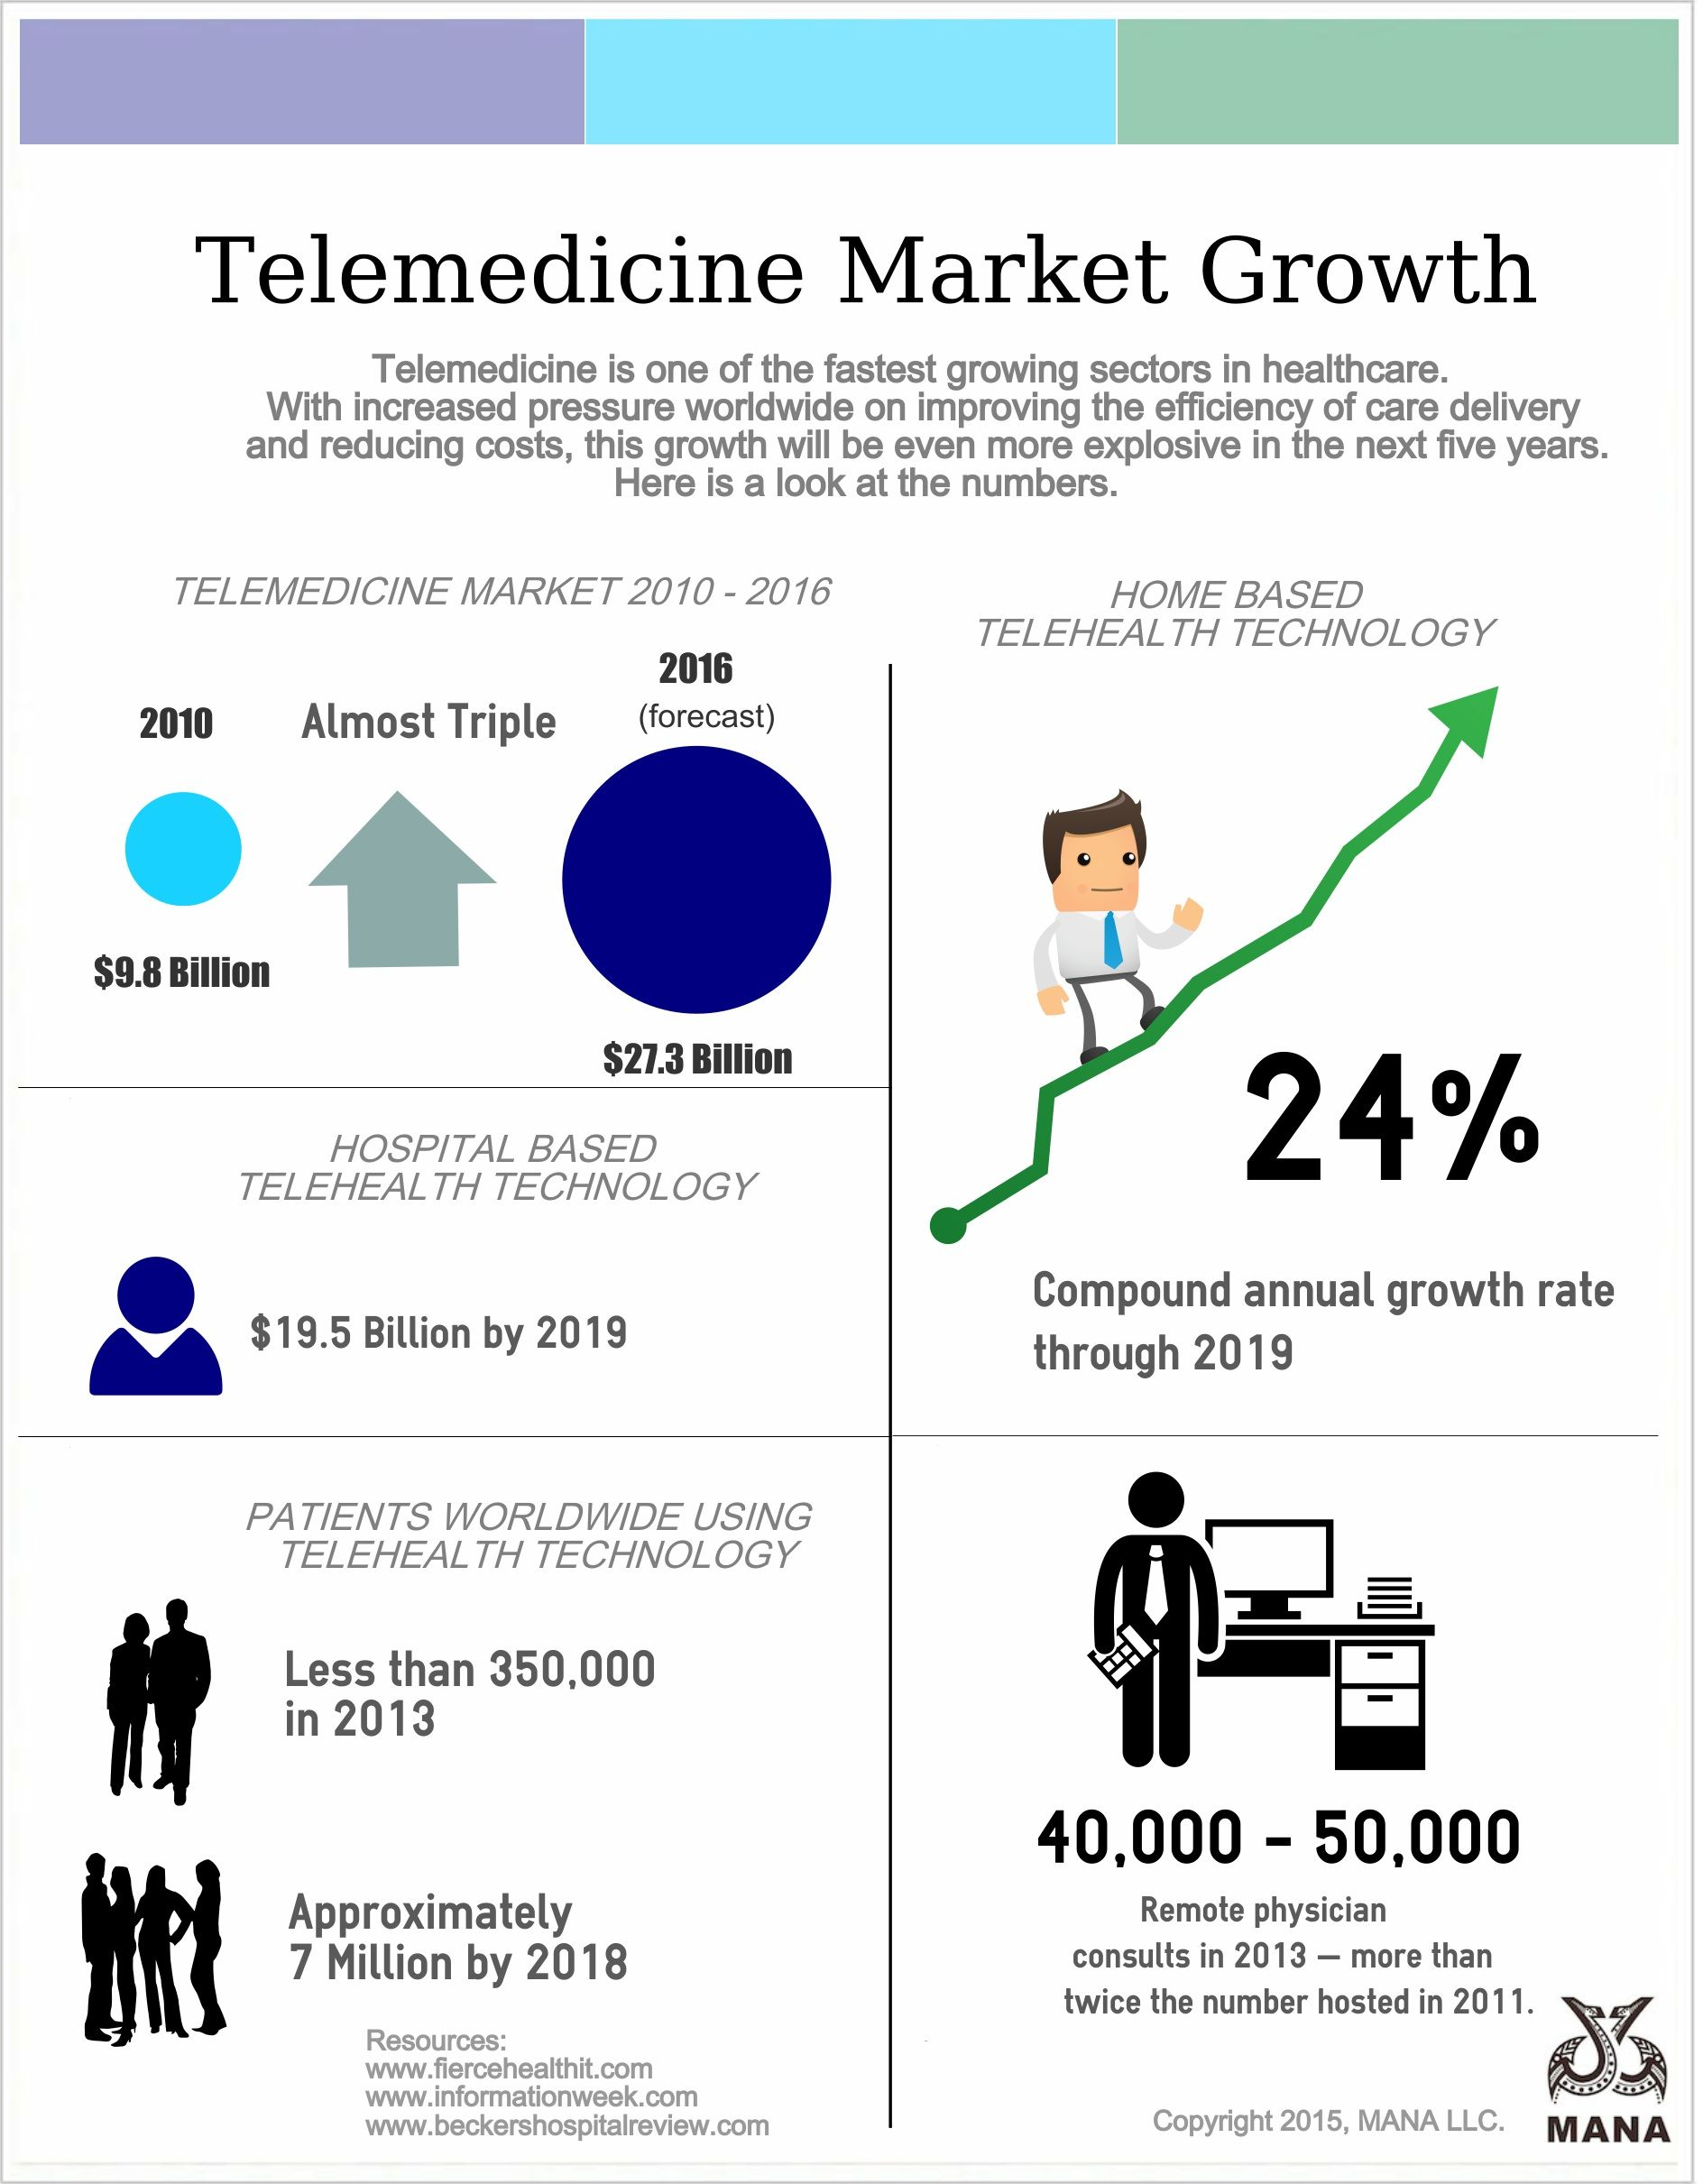 Growth forecast for telehealth Telemedicine, Healthcare